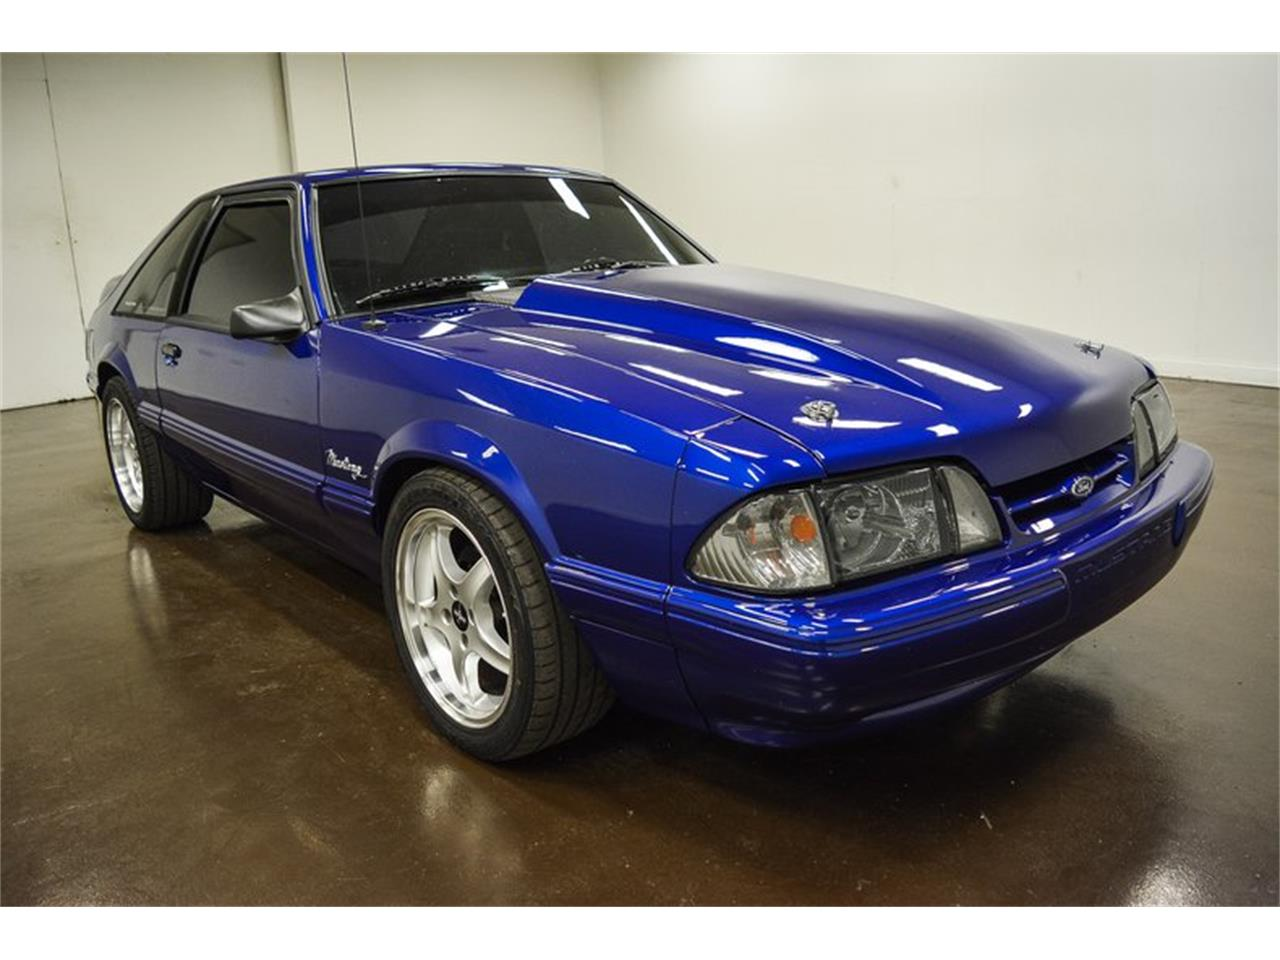 Large Picture of '91 Ford Mustang - $14,999.00 - PNVK